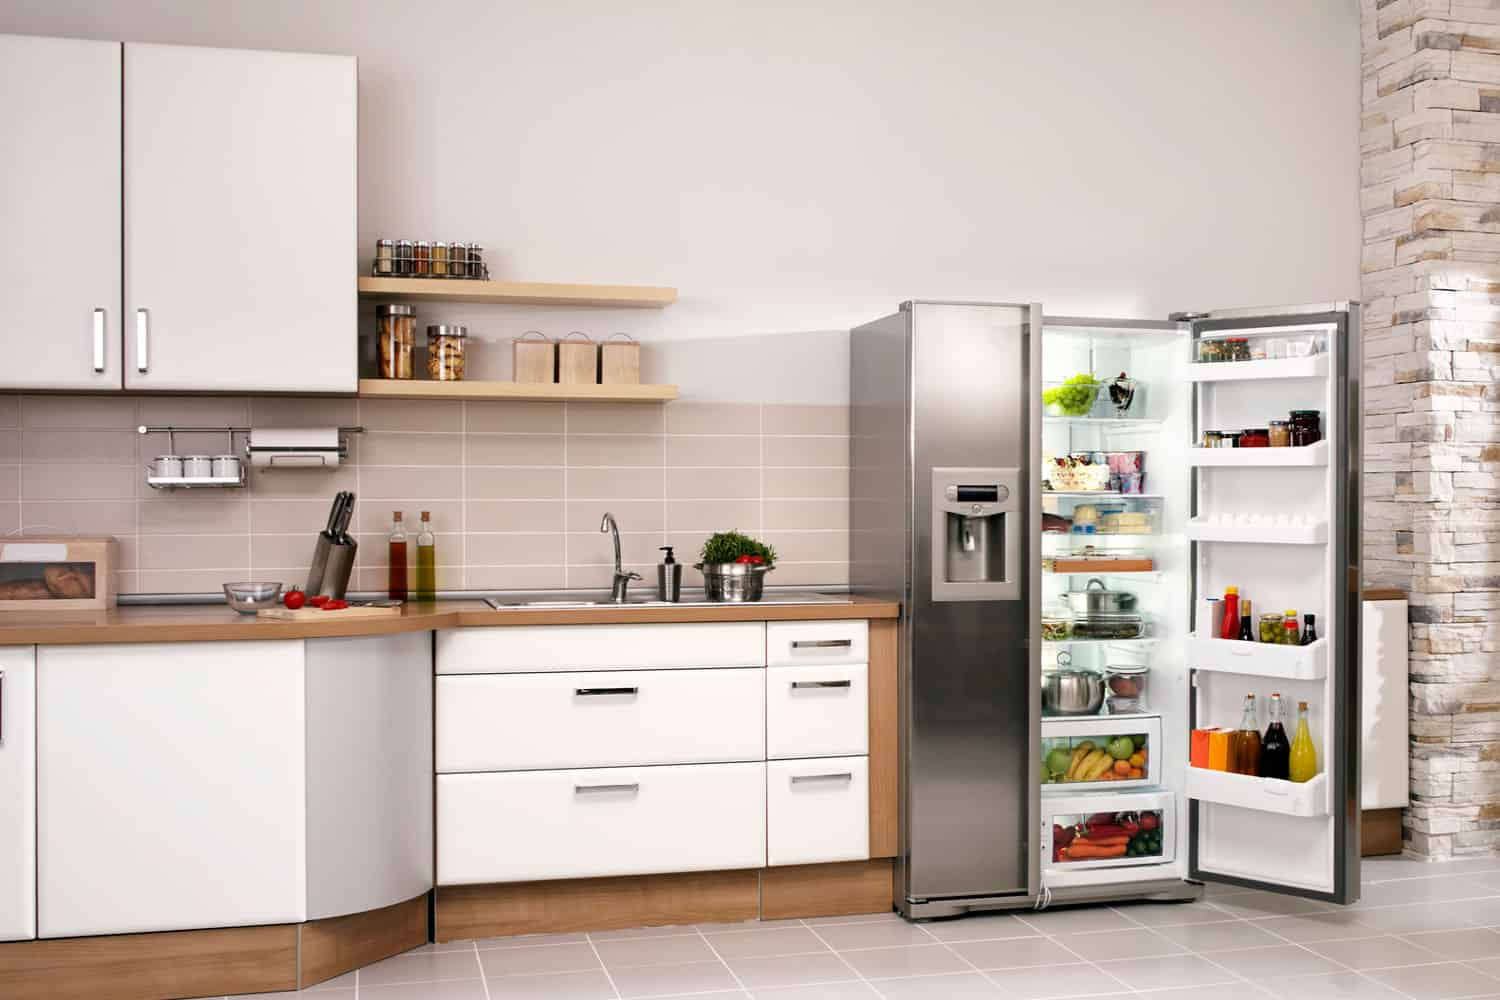 Big kitchen in a modern home with refrigerator and cabinets, What Is The Average Volume Of A Standard Fridge?